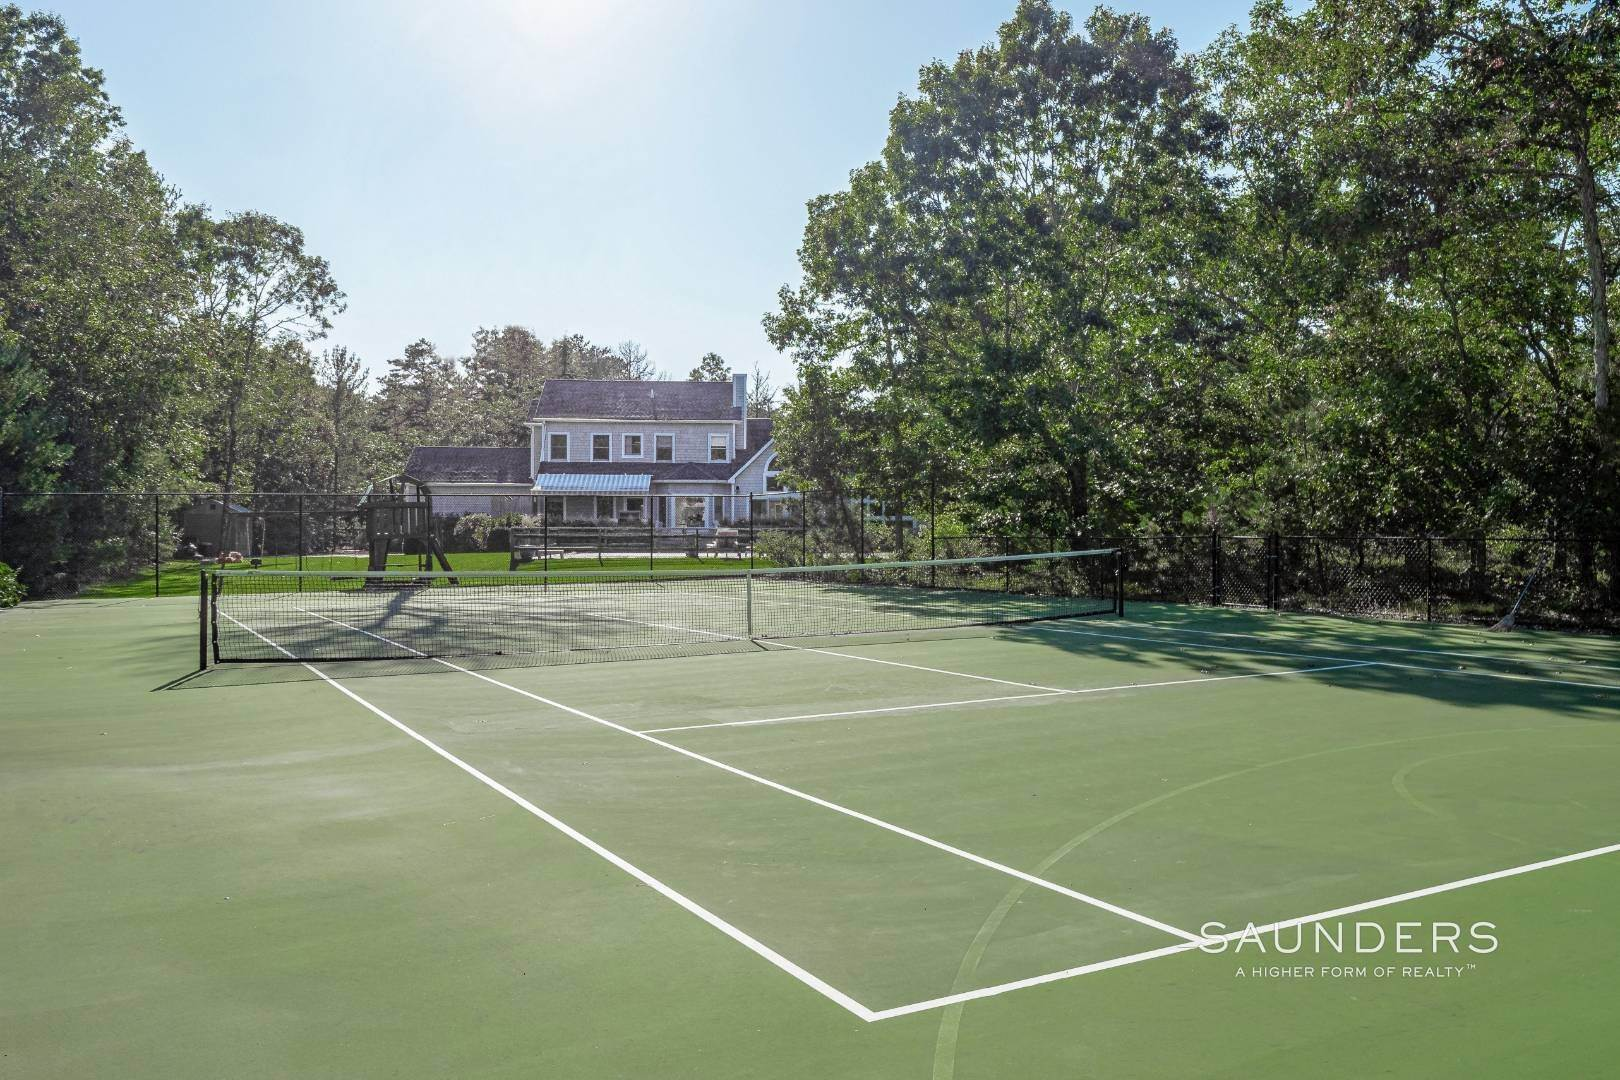 Single Family Homes for Sale at East End Retreat With Pool And Tennis 130 Six Pole Highway, Wainscott, East Hampton Town, NY 11963